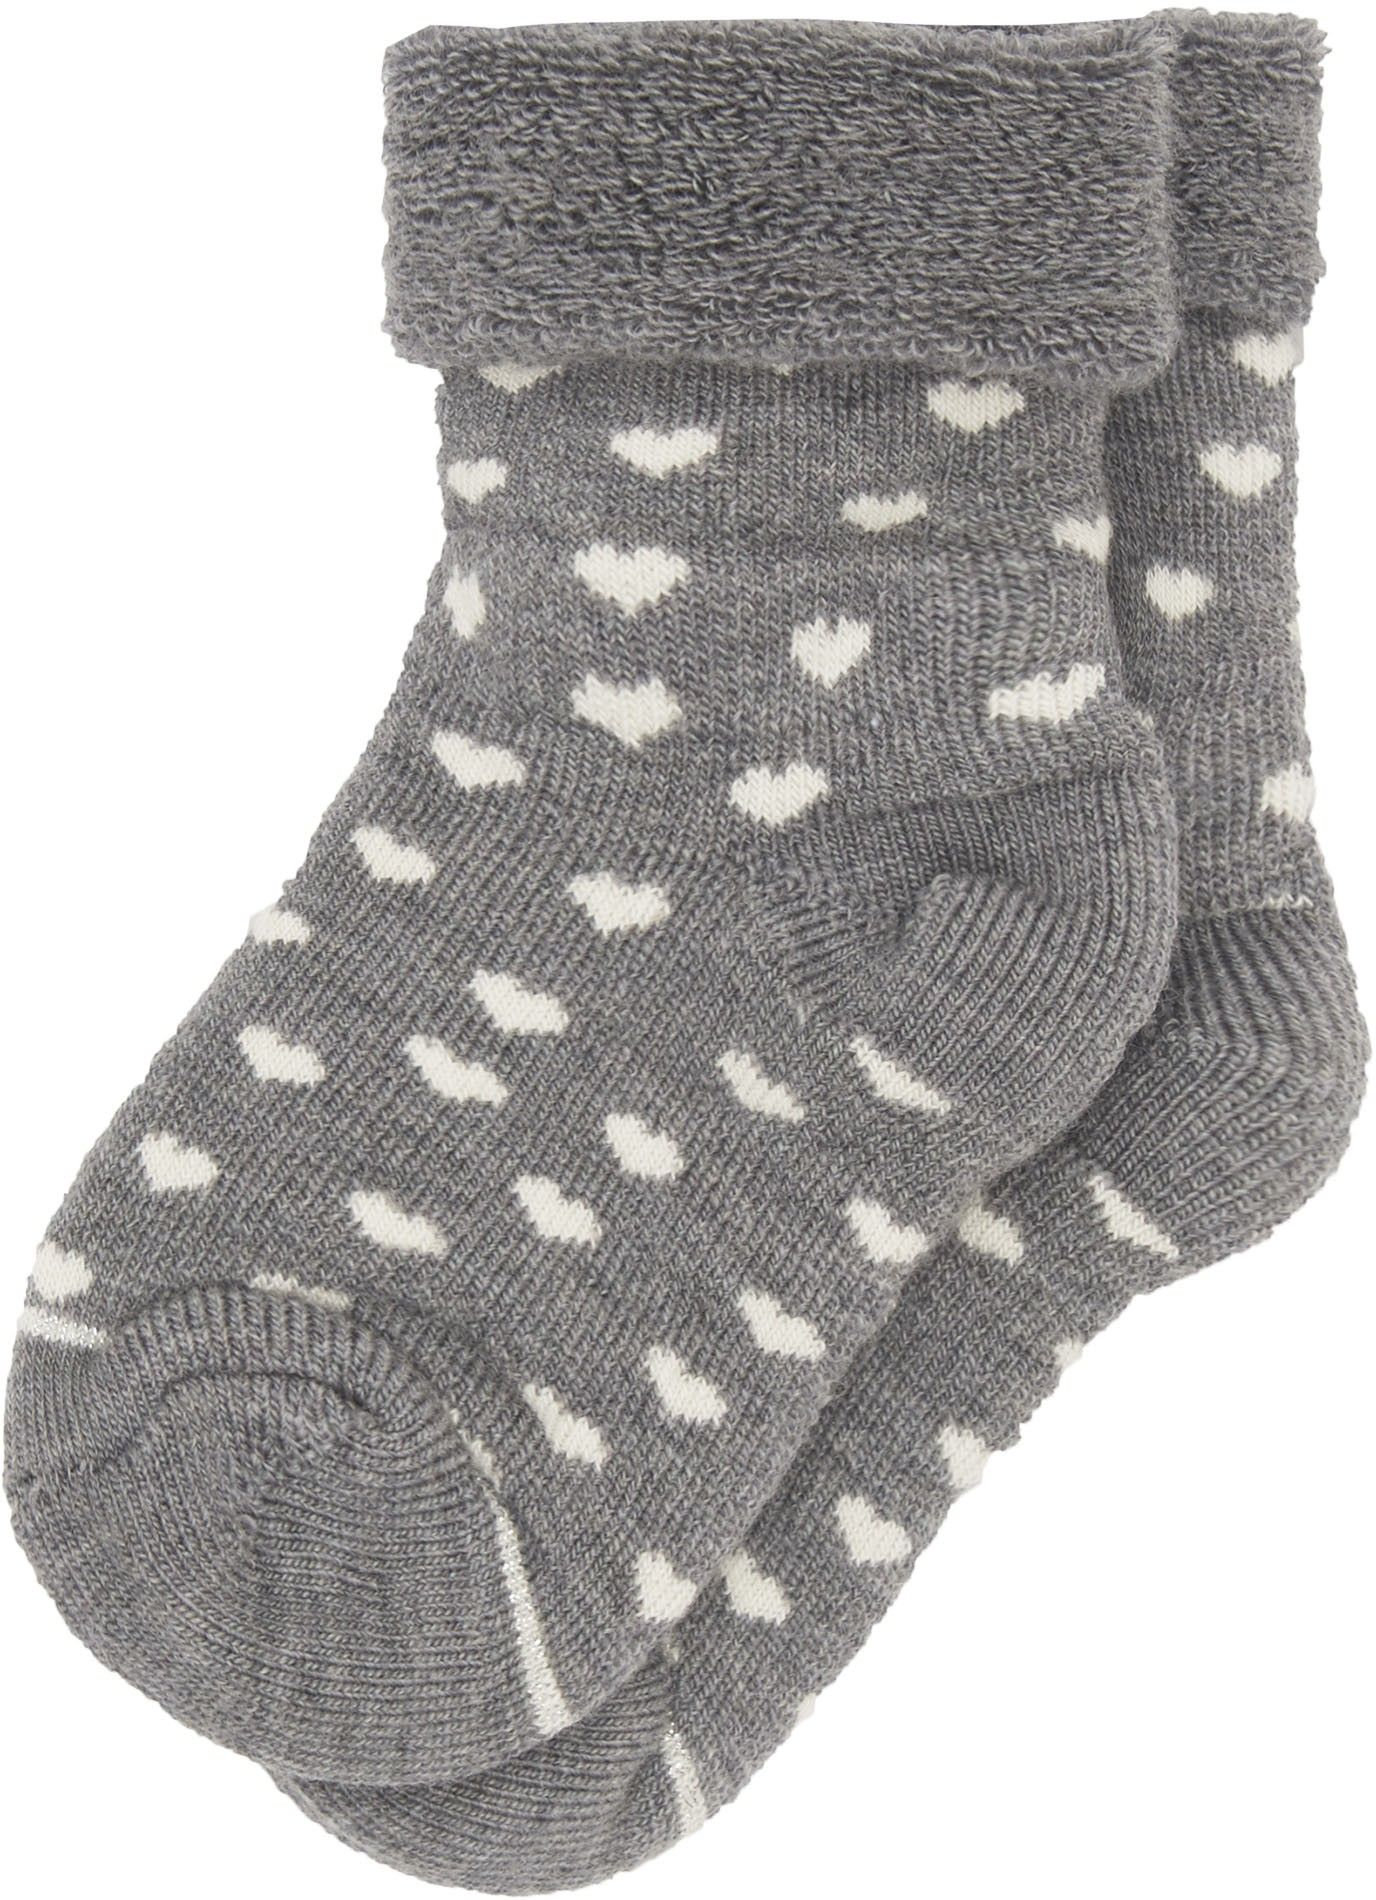 Shop The Martin Pederson Girls Wool Baby Ankle Socks In Grey Browse